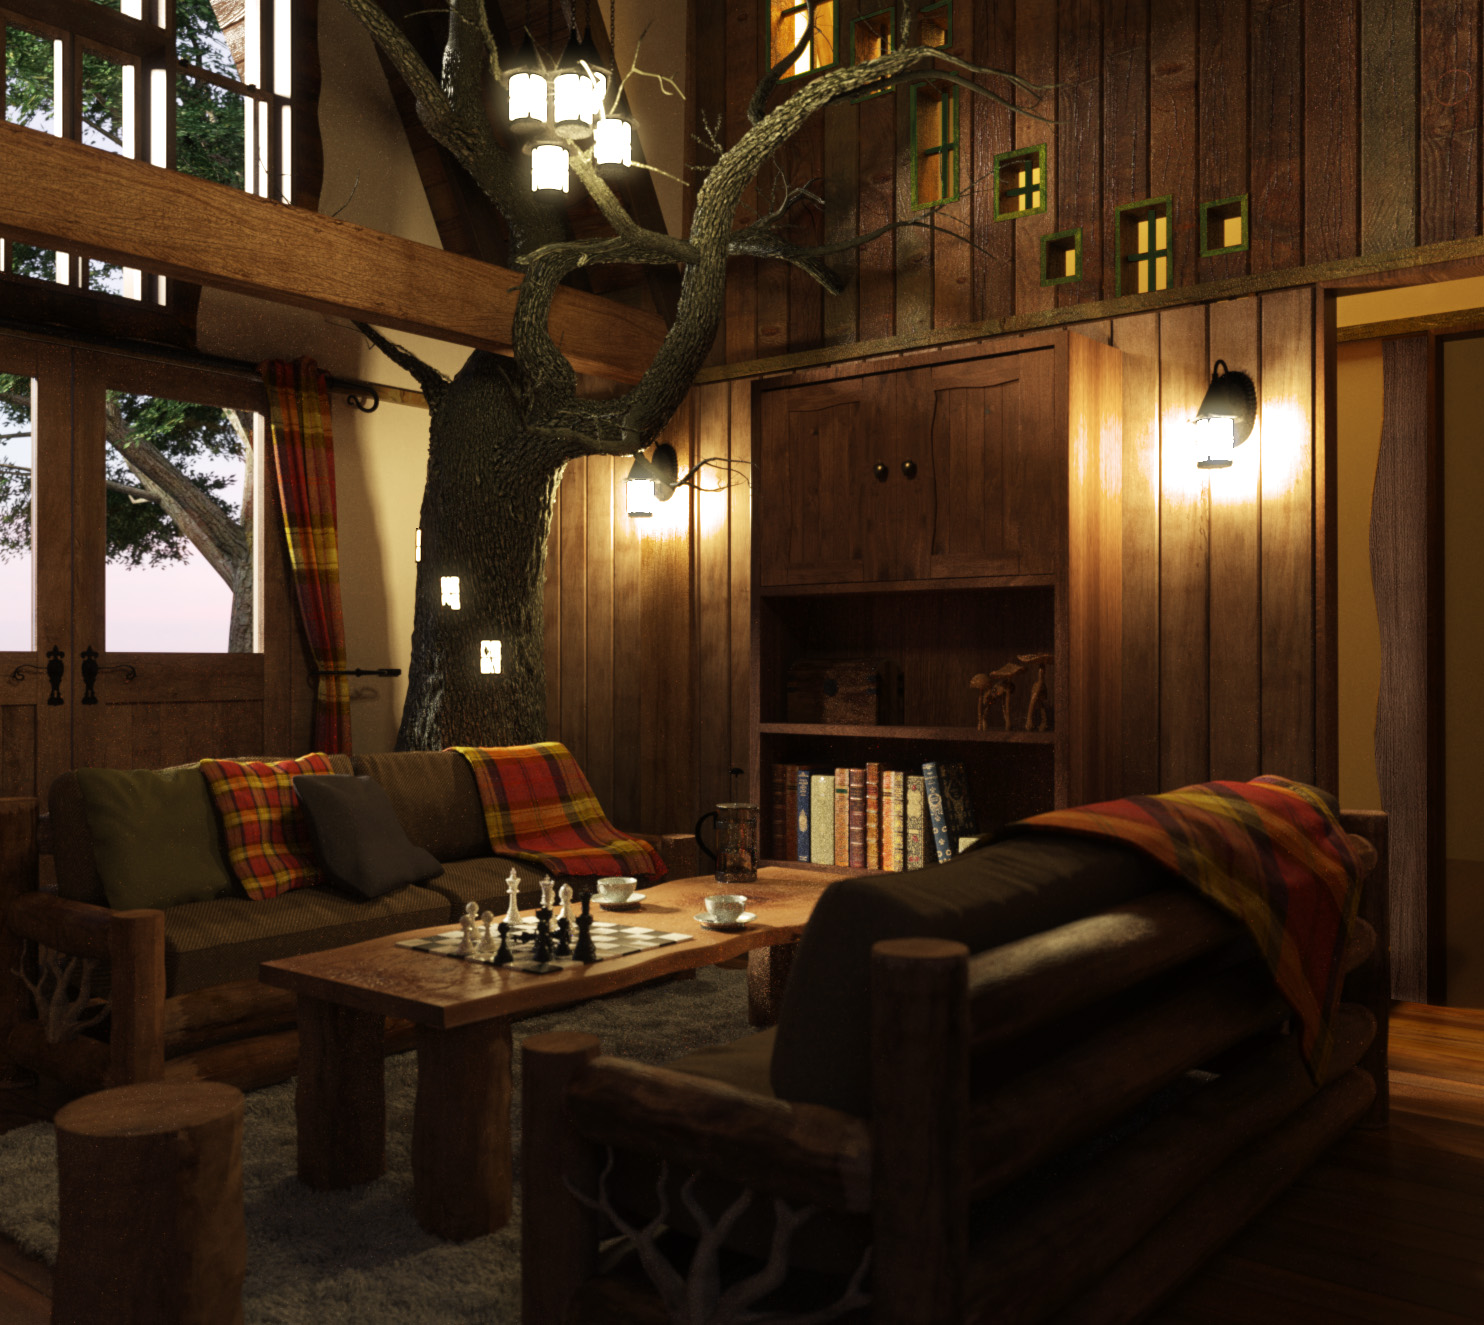 Flo S Design Incorporates A Real Tree Into The Treehouse Interior